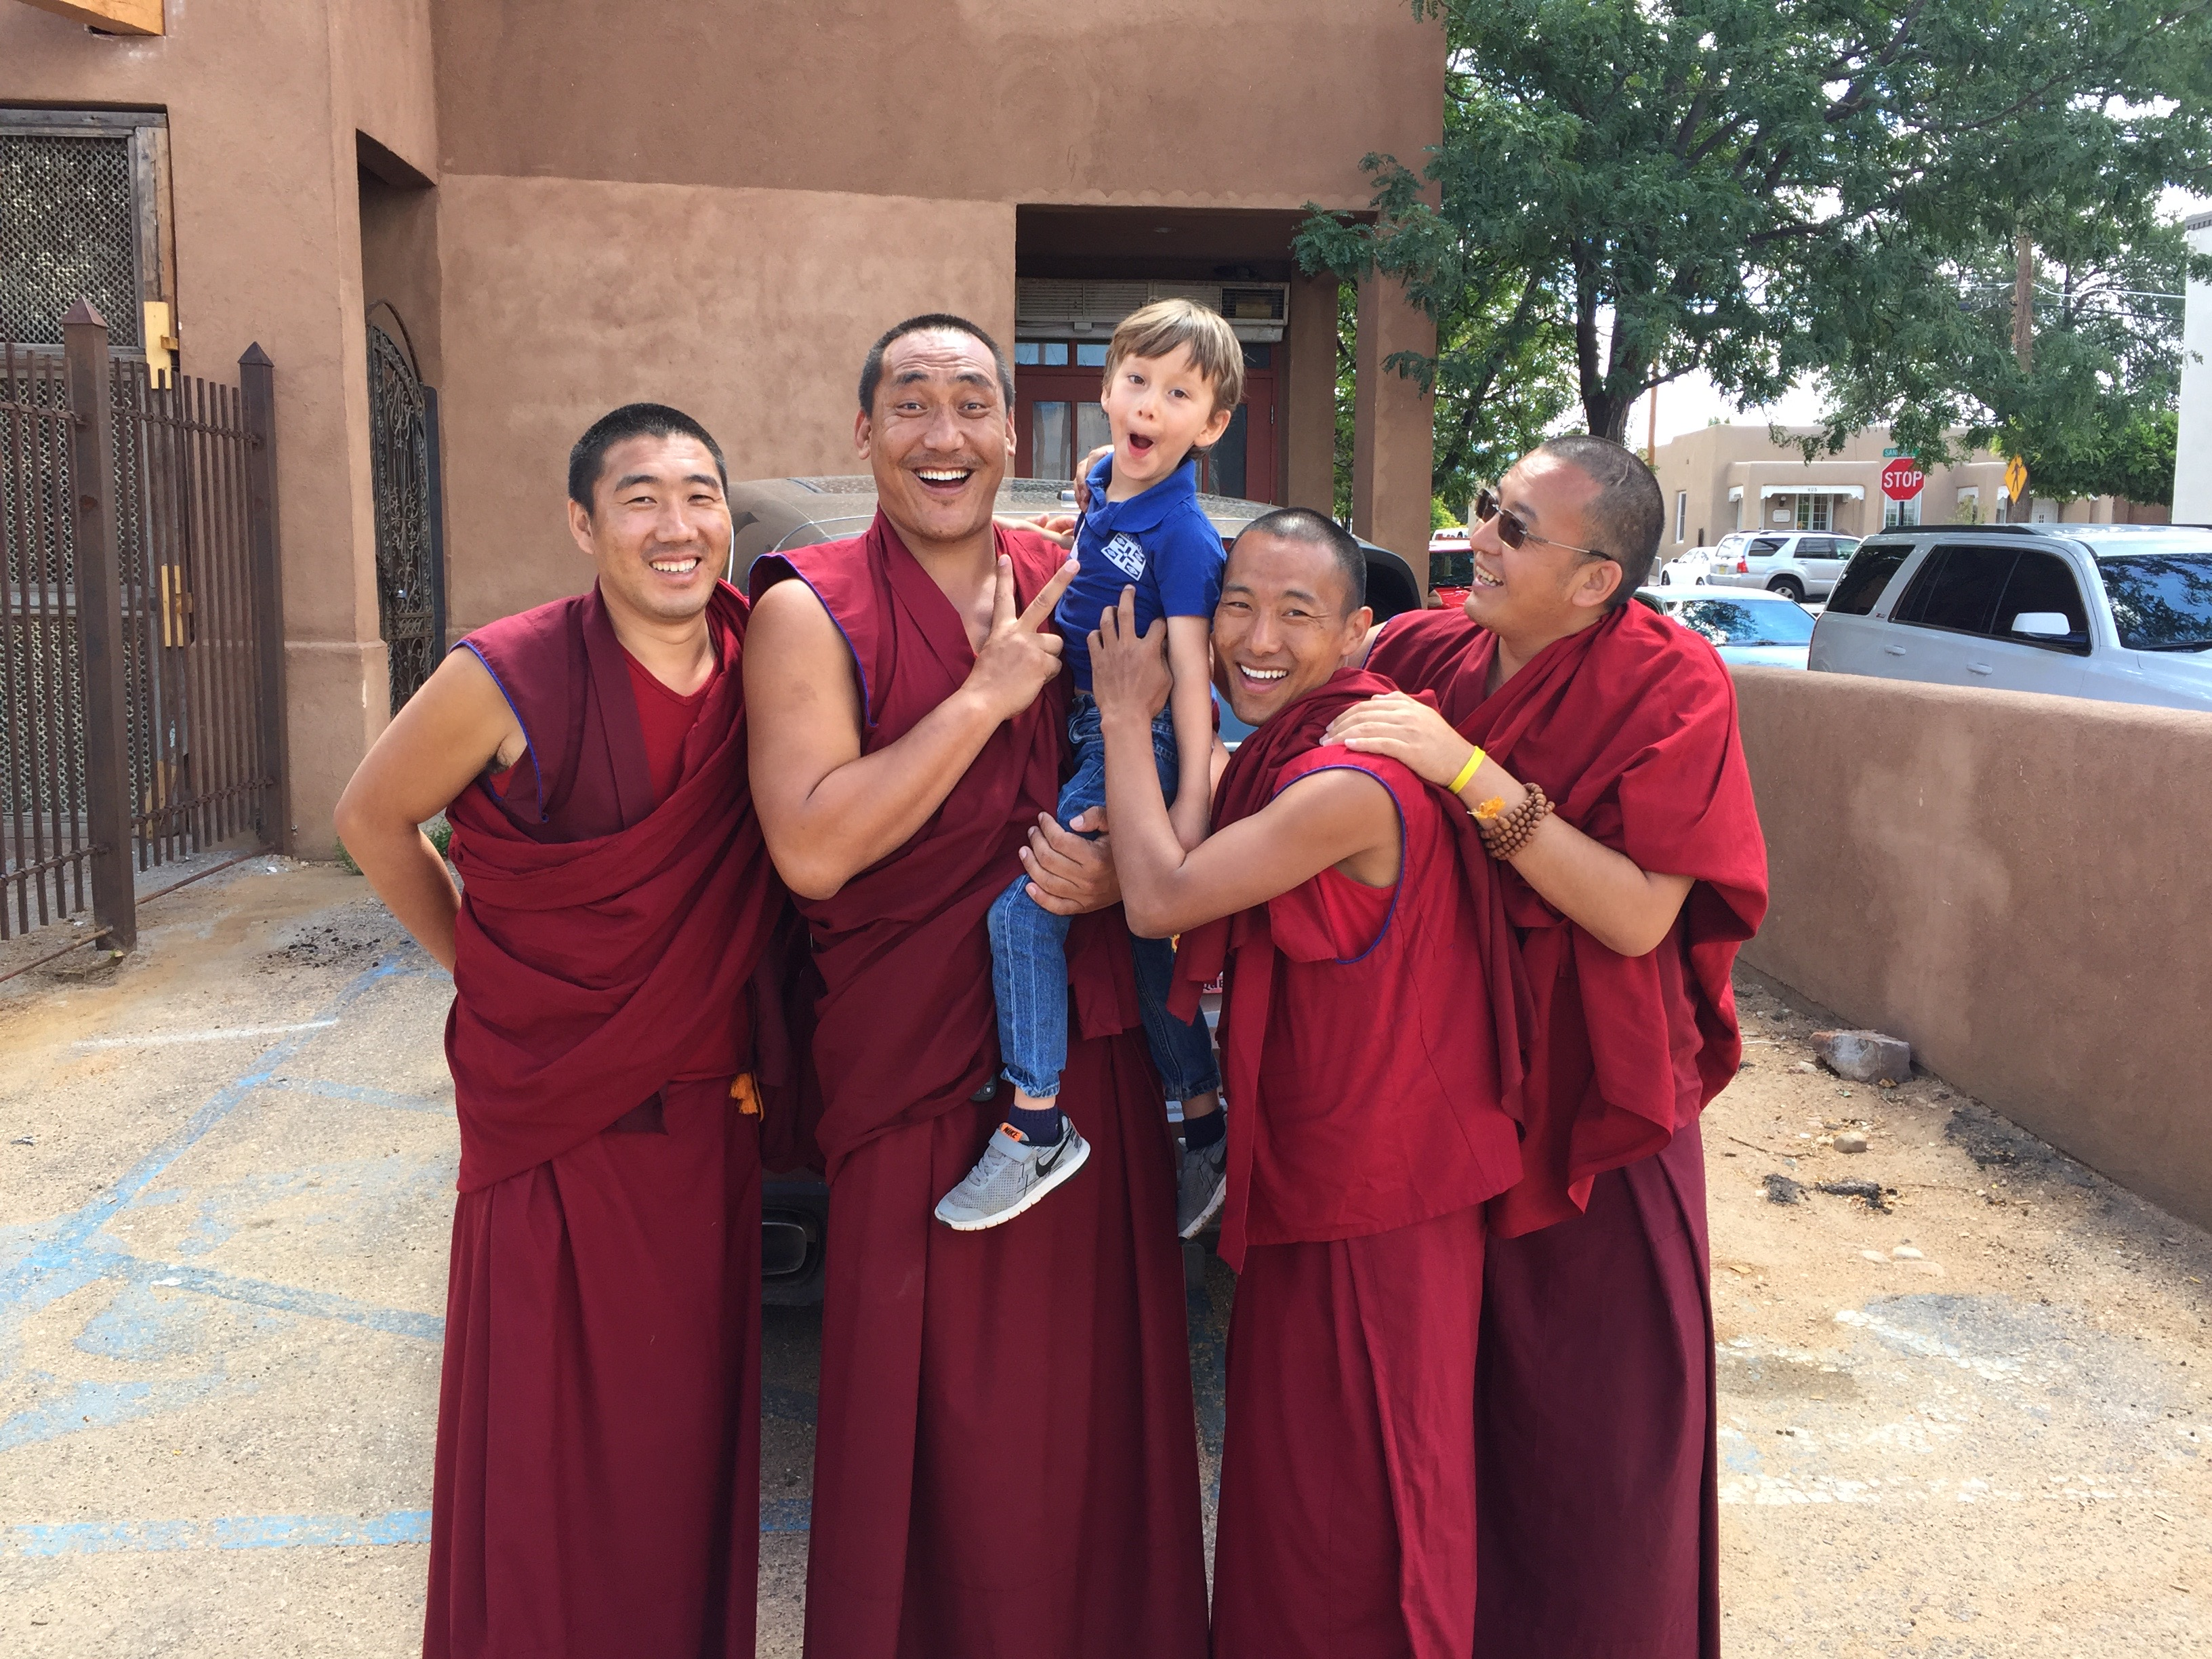 The monks of the Drepung Loseling Monastery posing with Kieran Seret